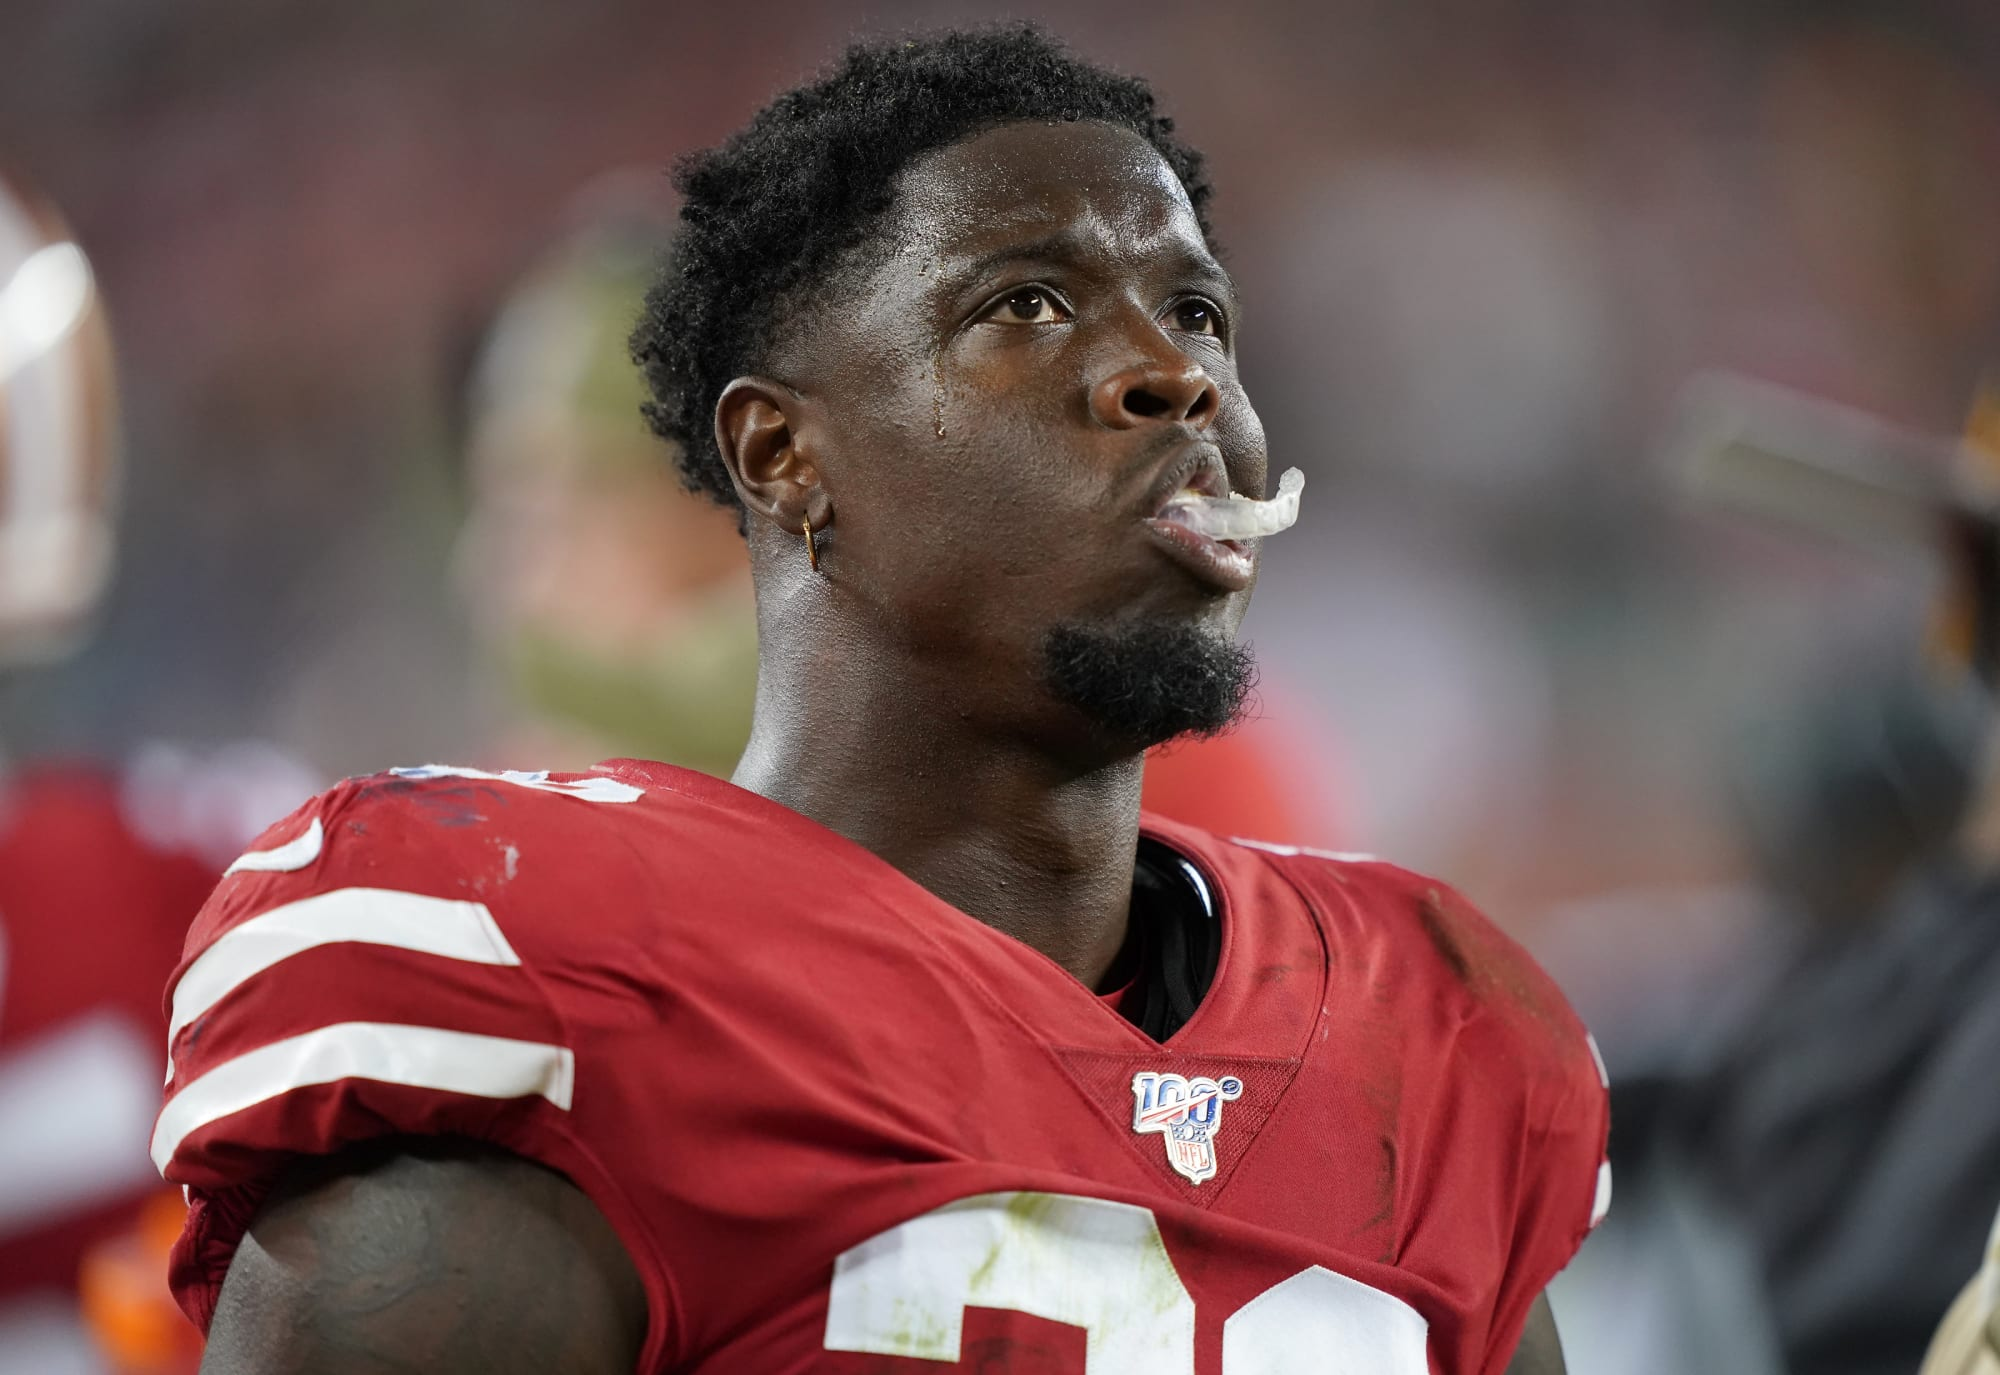 What does future hold for 49ers safety Jaquiski Tartt?